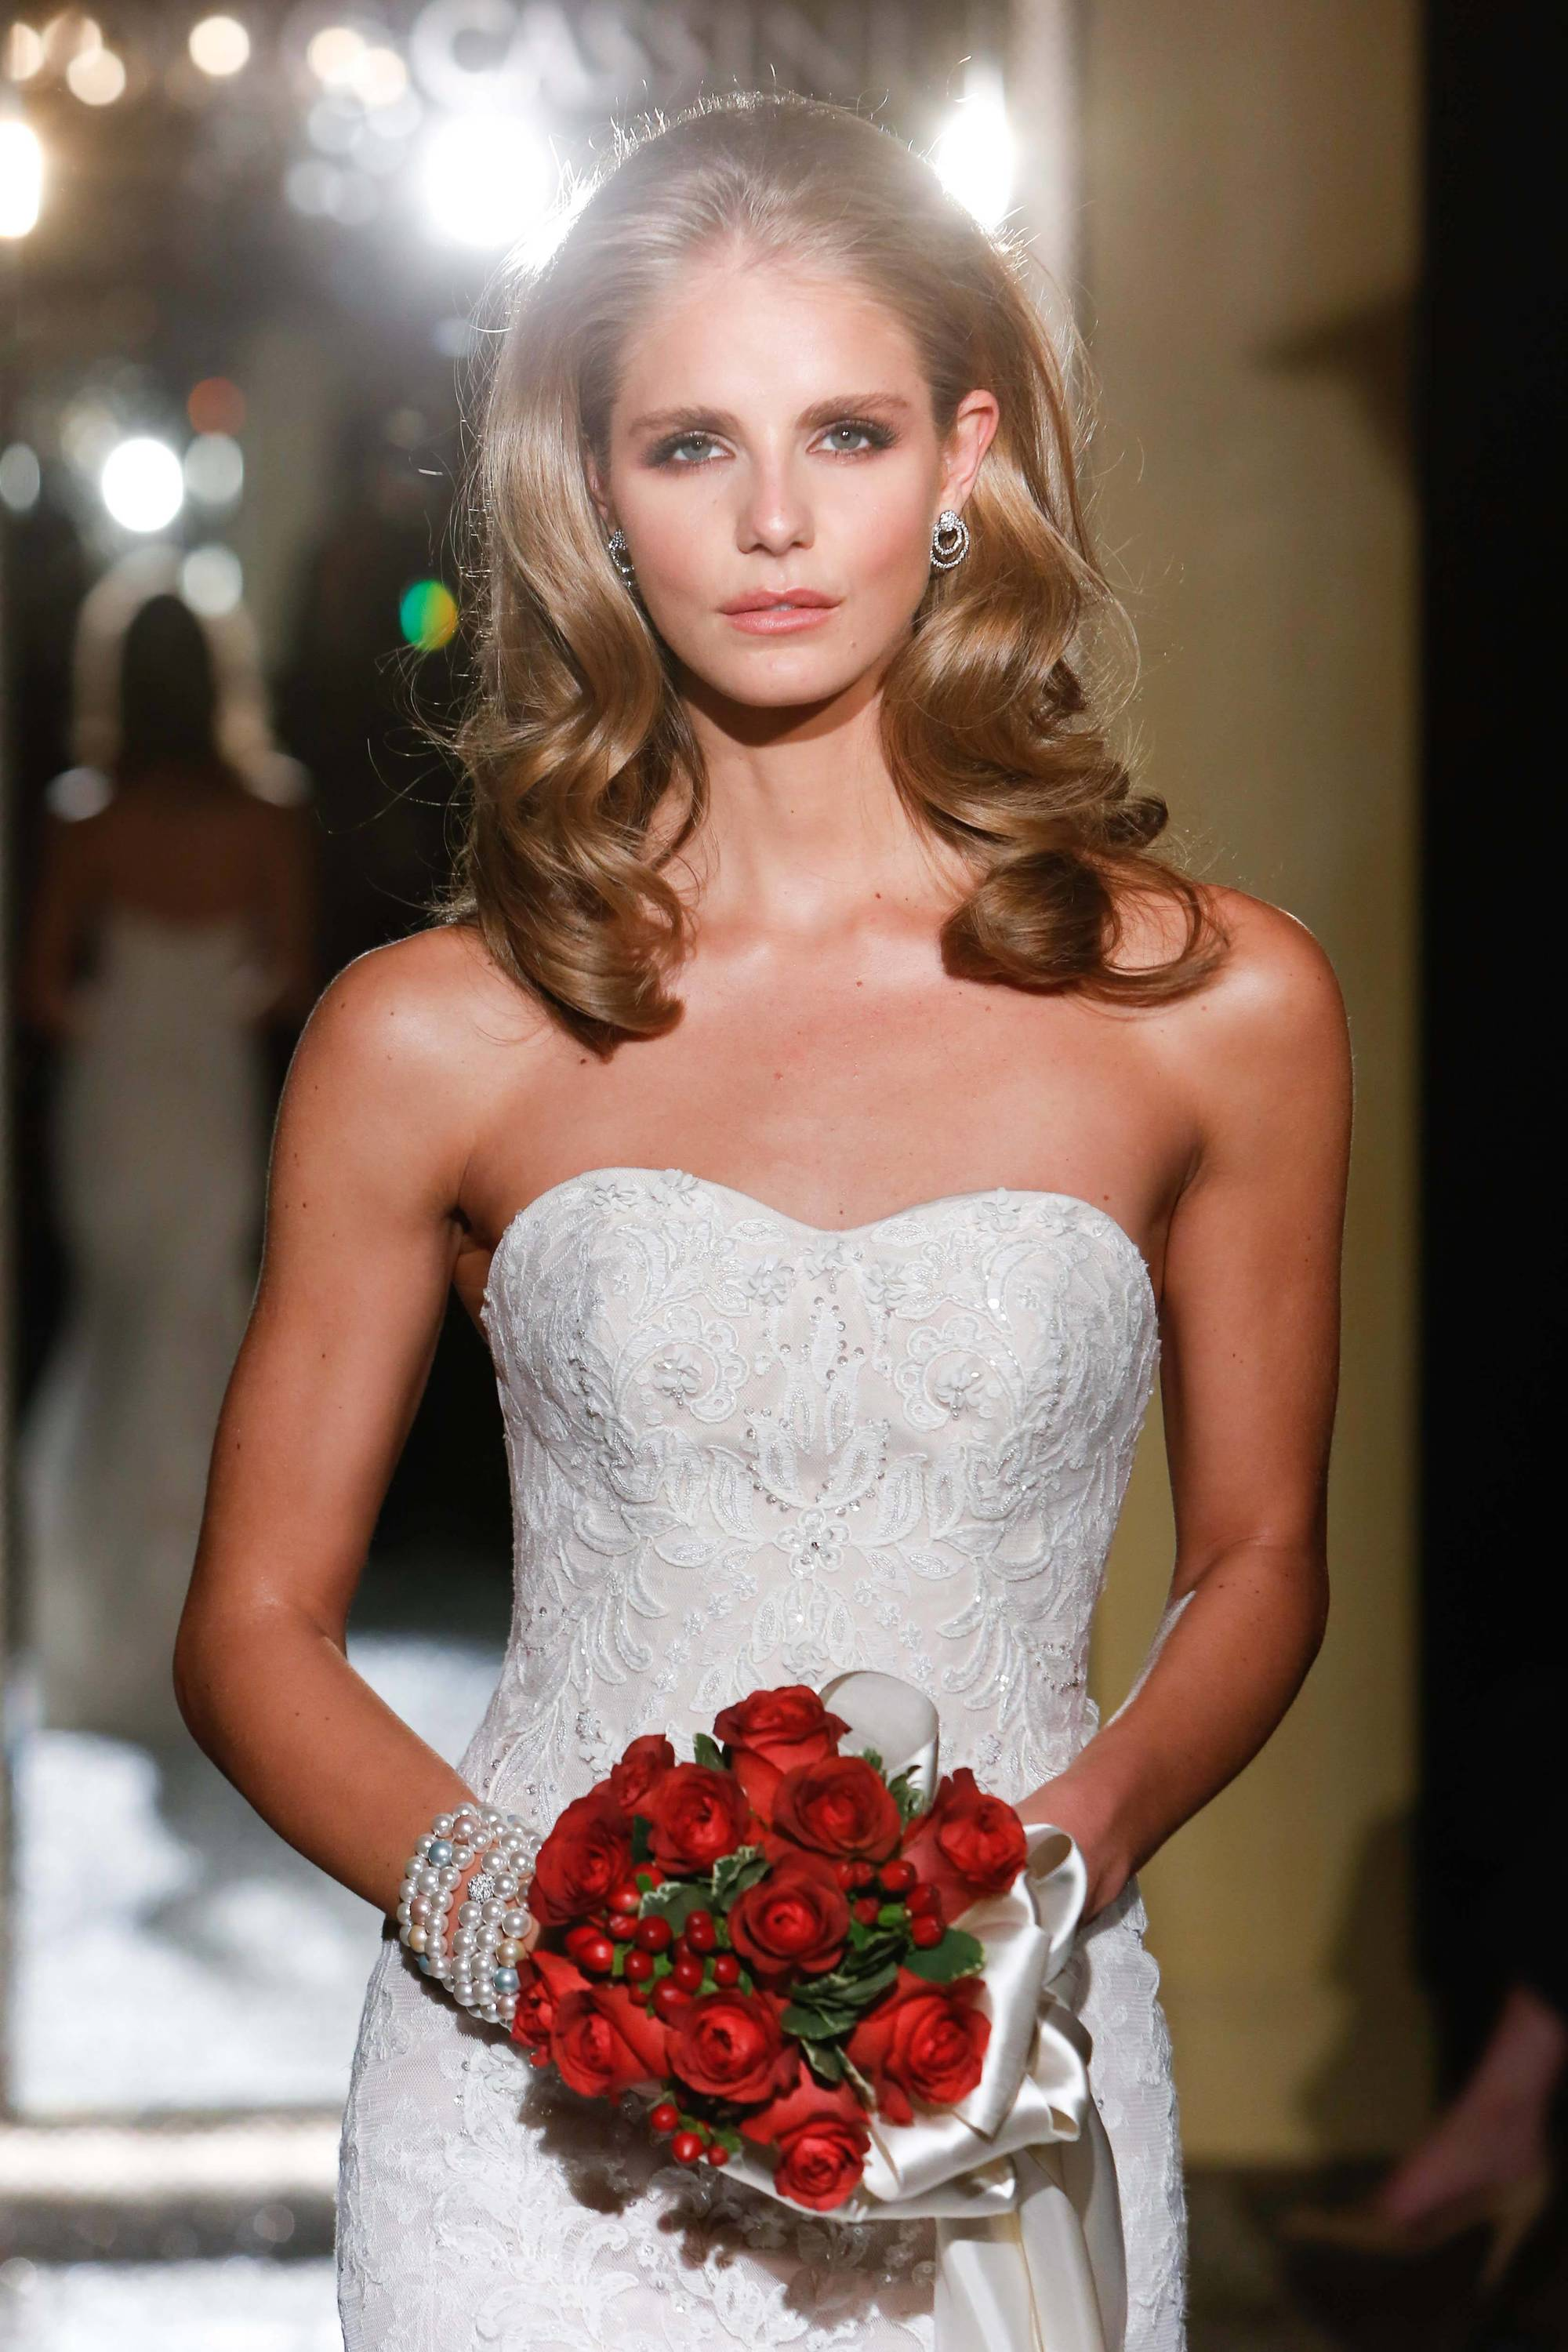 Straight Hair Ideas For Weddings include gorgeous and romantic wives.